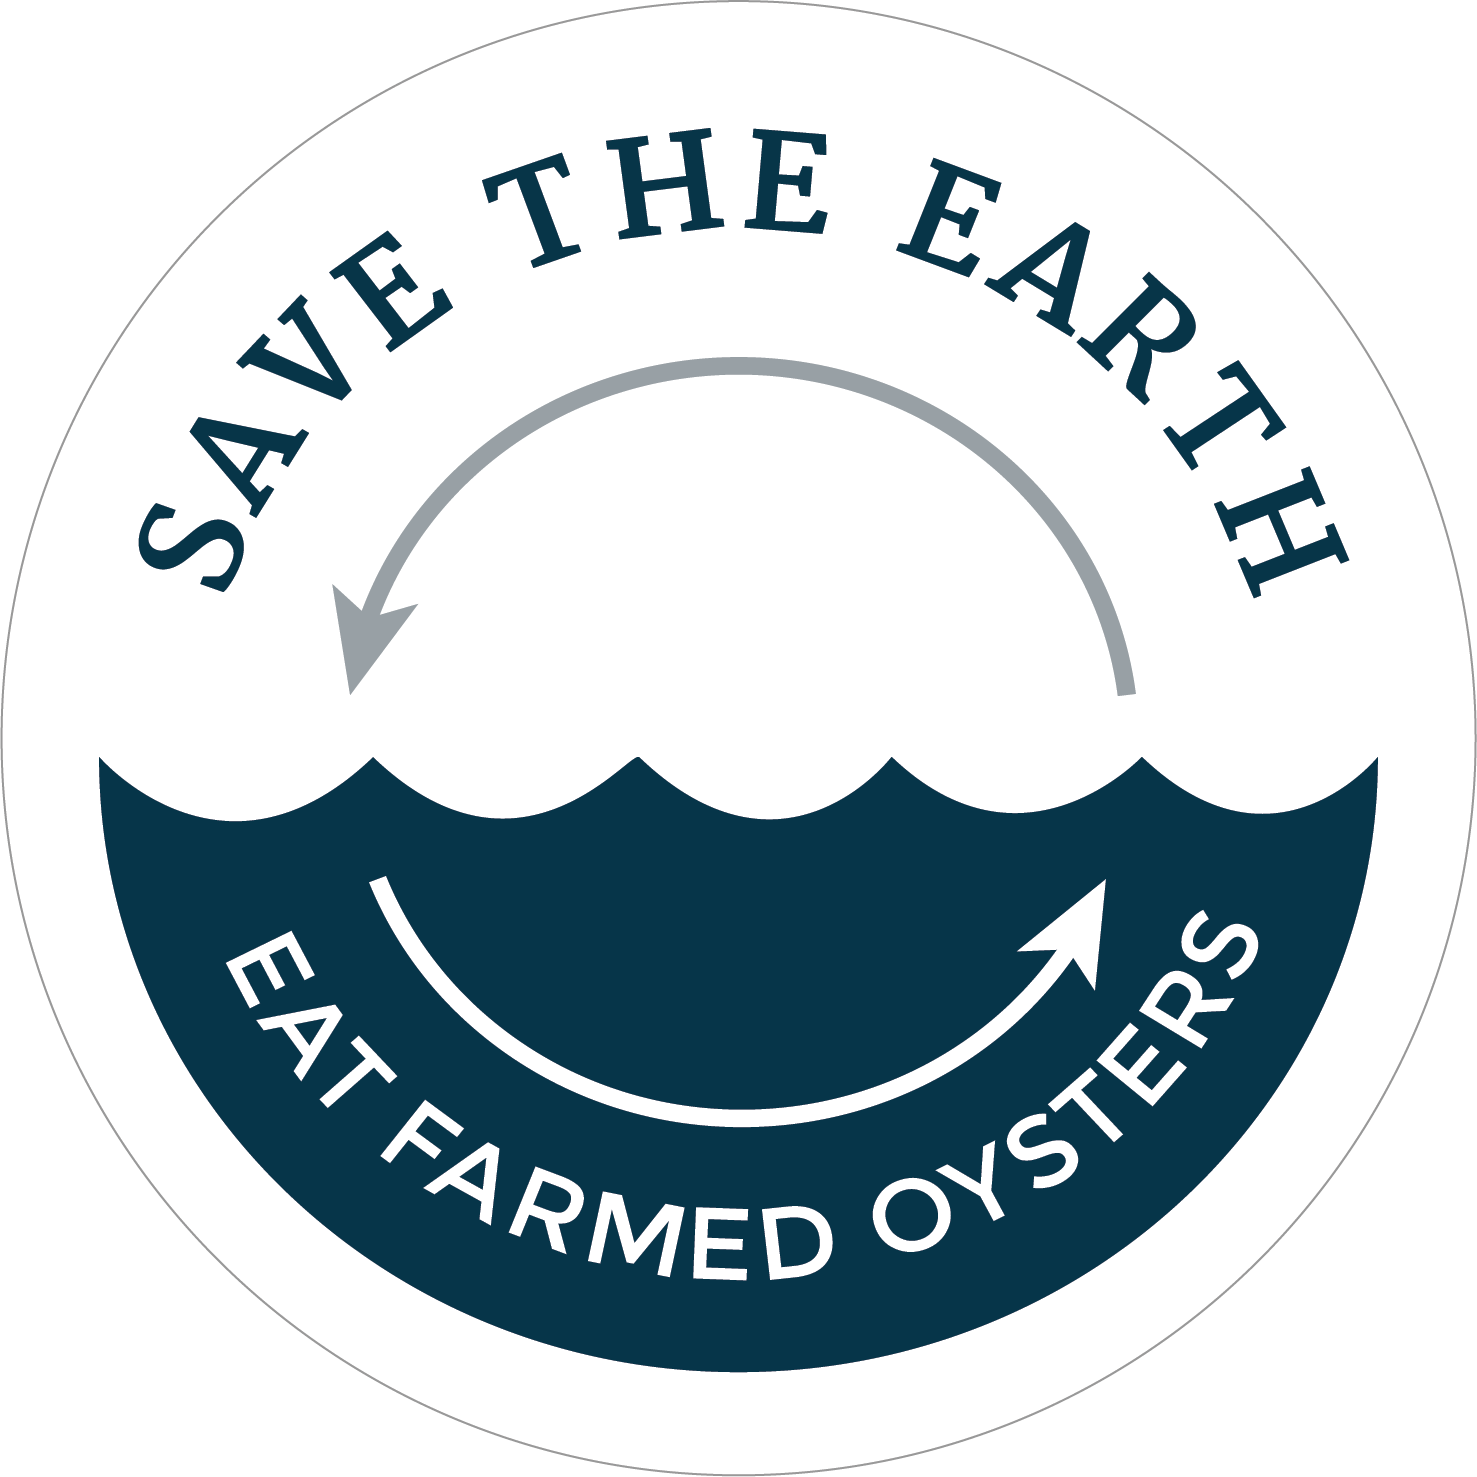 Save the Earth, Eat Farmed Oysters